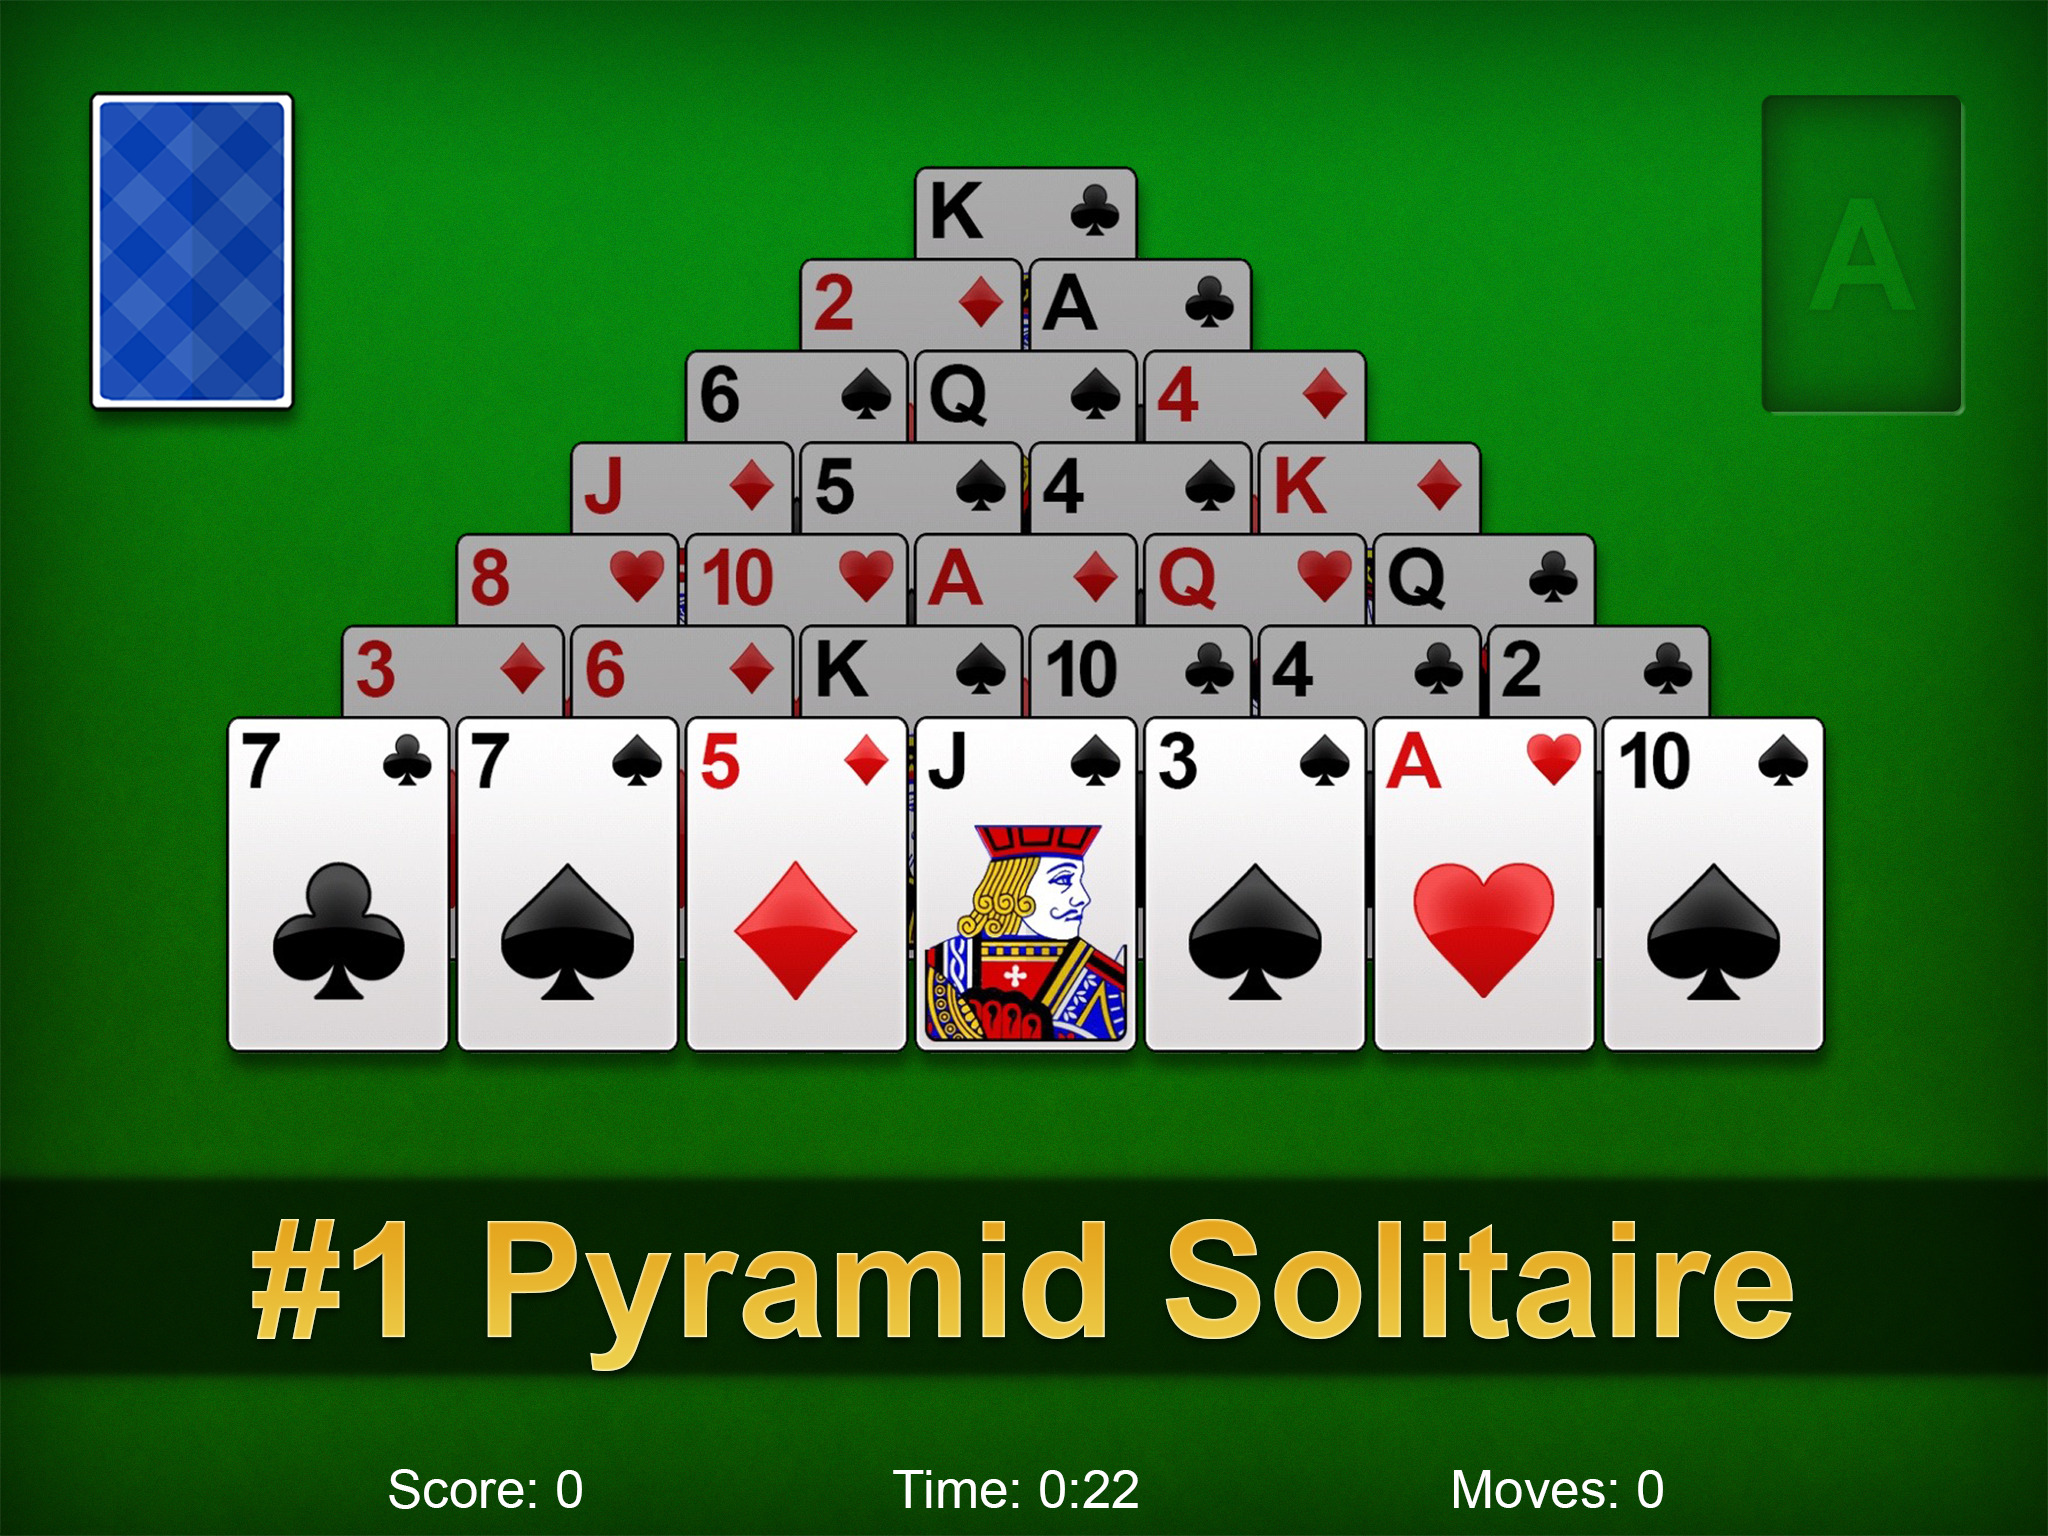 How to Play Pyramid Solitaire